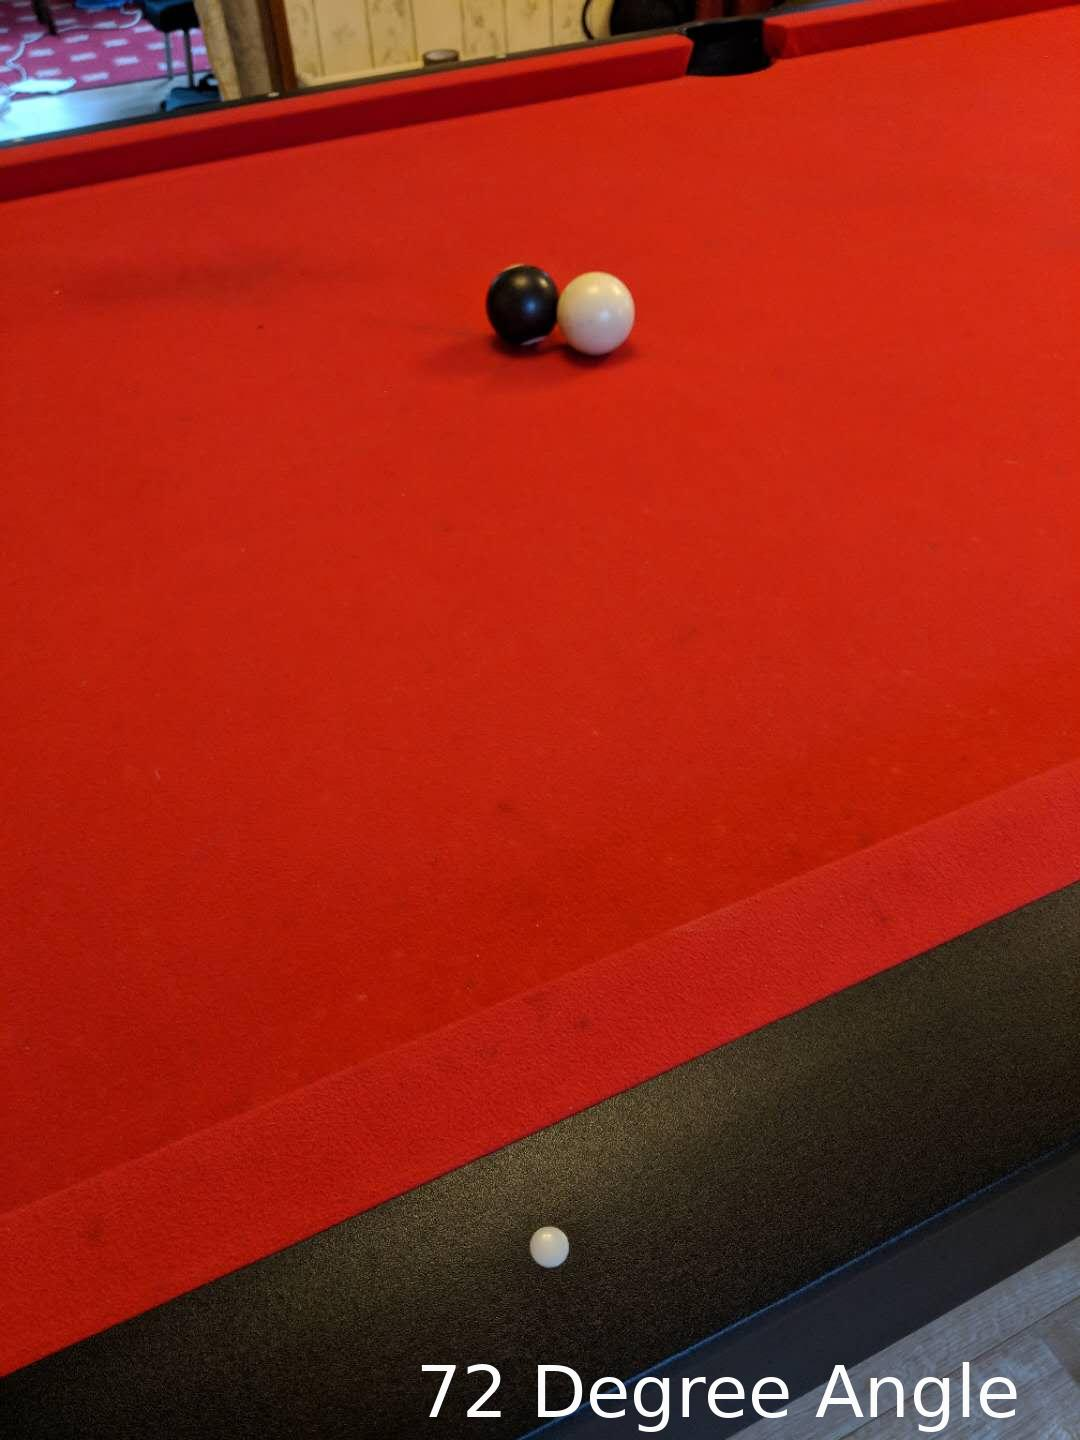 How To Set Up Pool Balls Quora >> Show How To Calculate What Angle To Hit A Pool Ball With